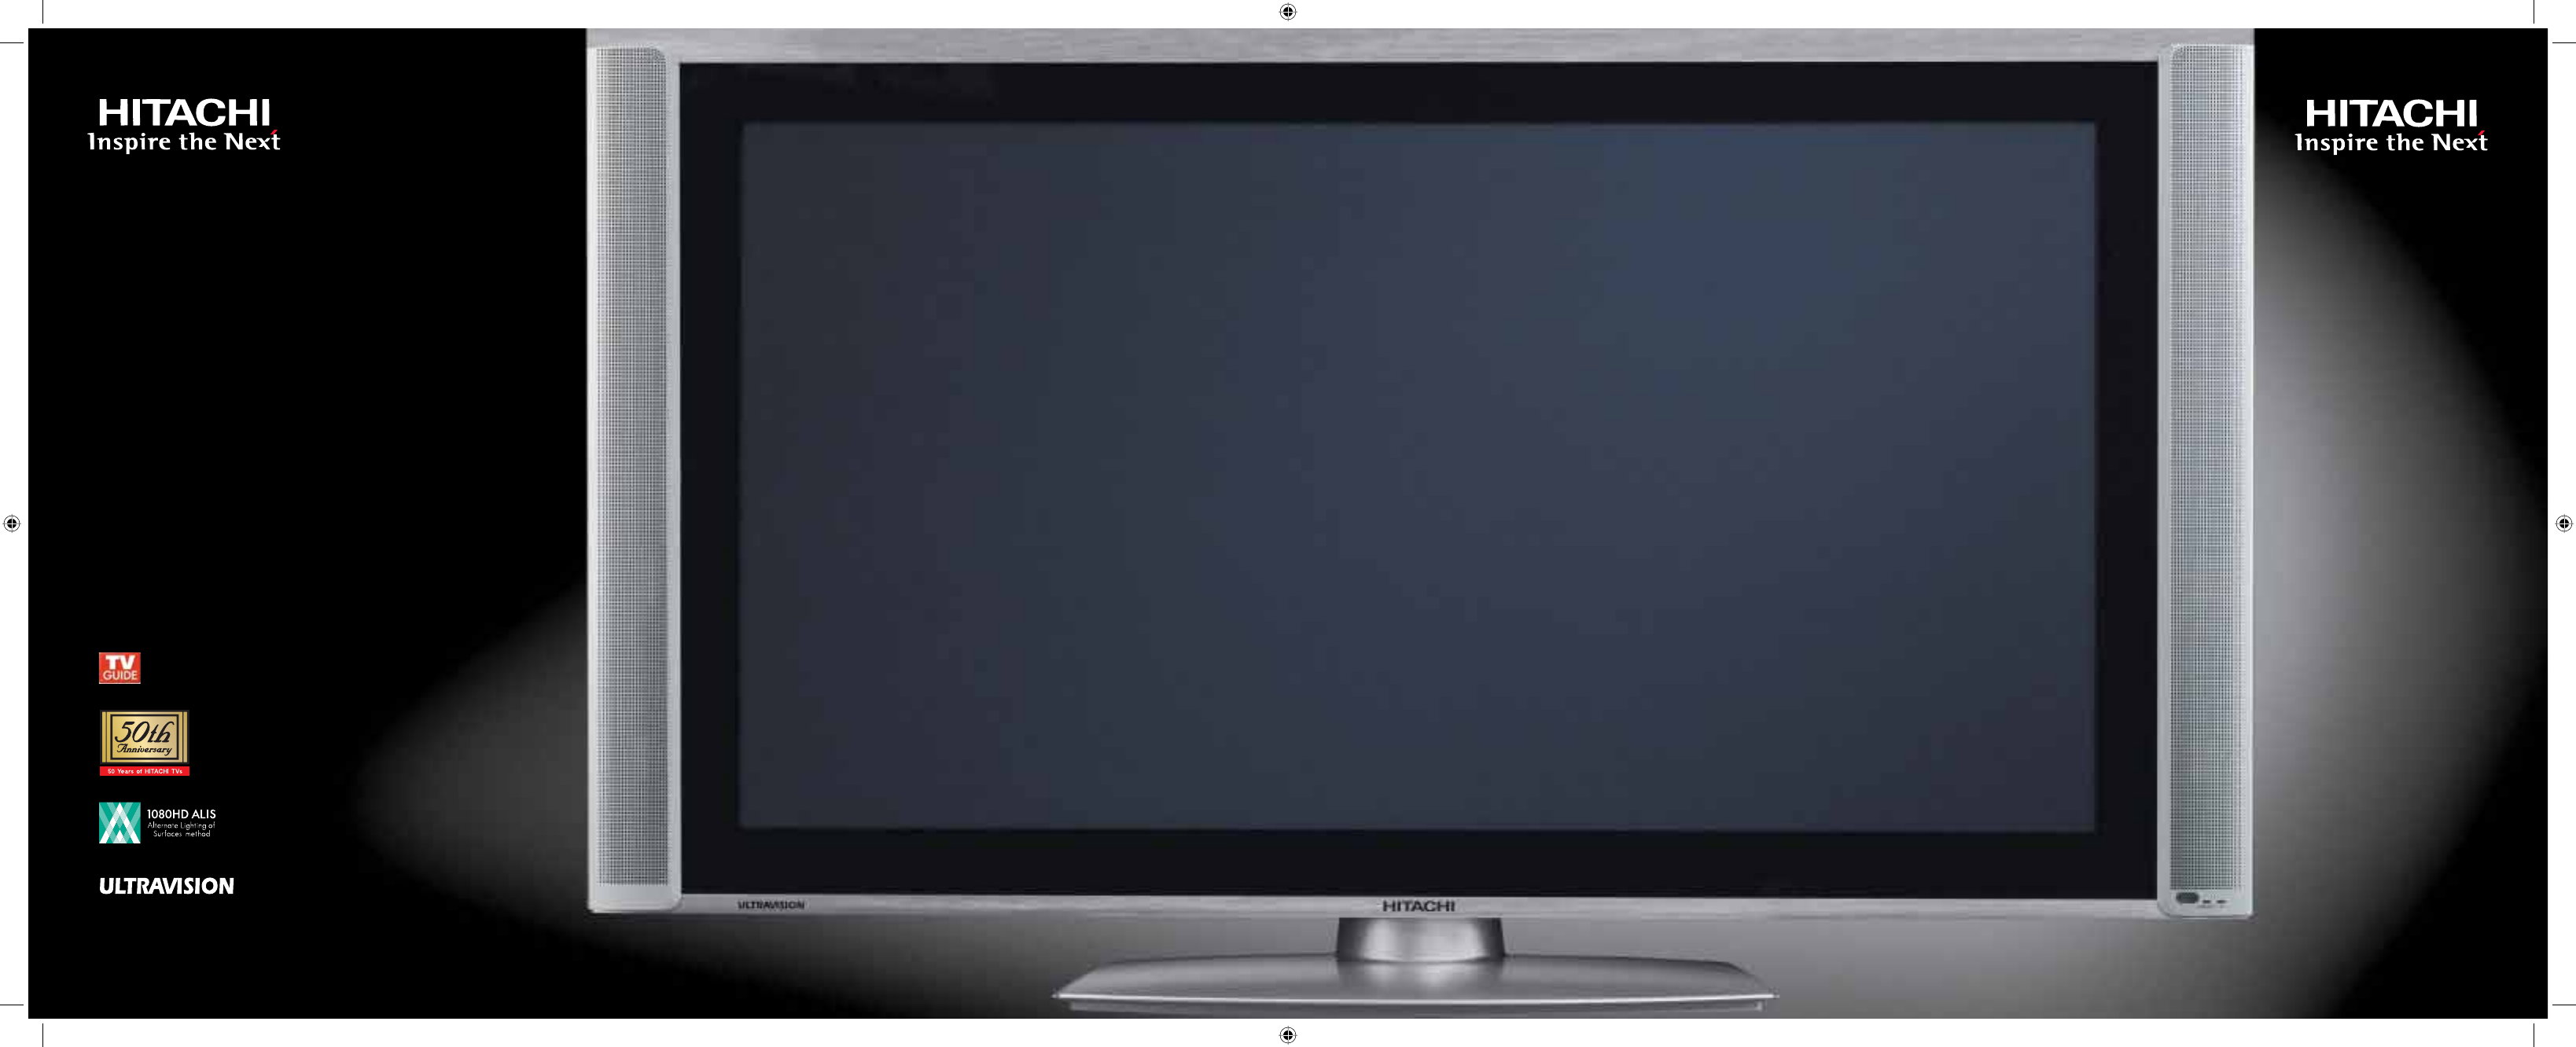 hitachi flat panel television plasma user guide. Black Bedroom Furniture Sets. Home Design Ideas